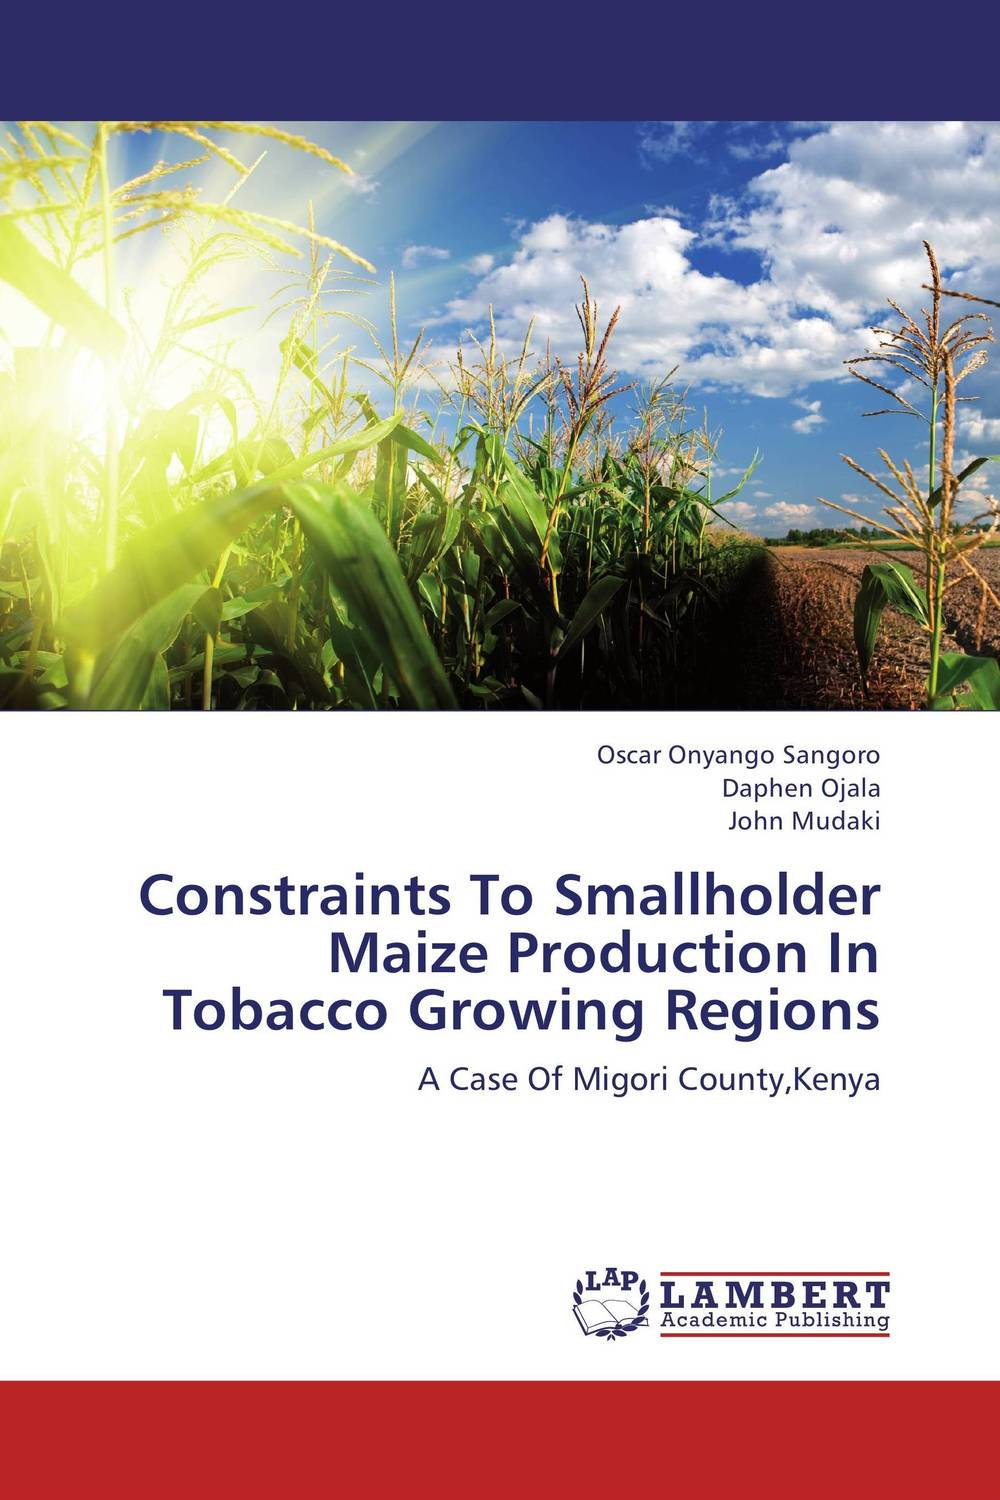 Constraints To Smallholder Maize Production In Tobacco Growing Regions cold storage accessibility and agricultural production by smallholders